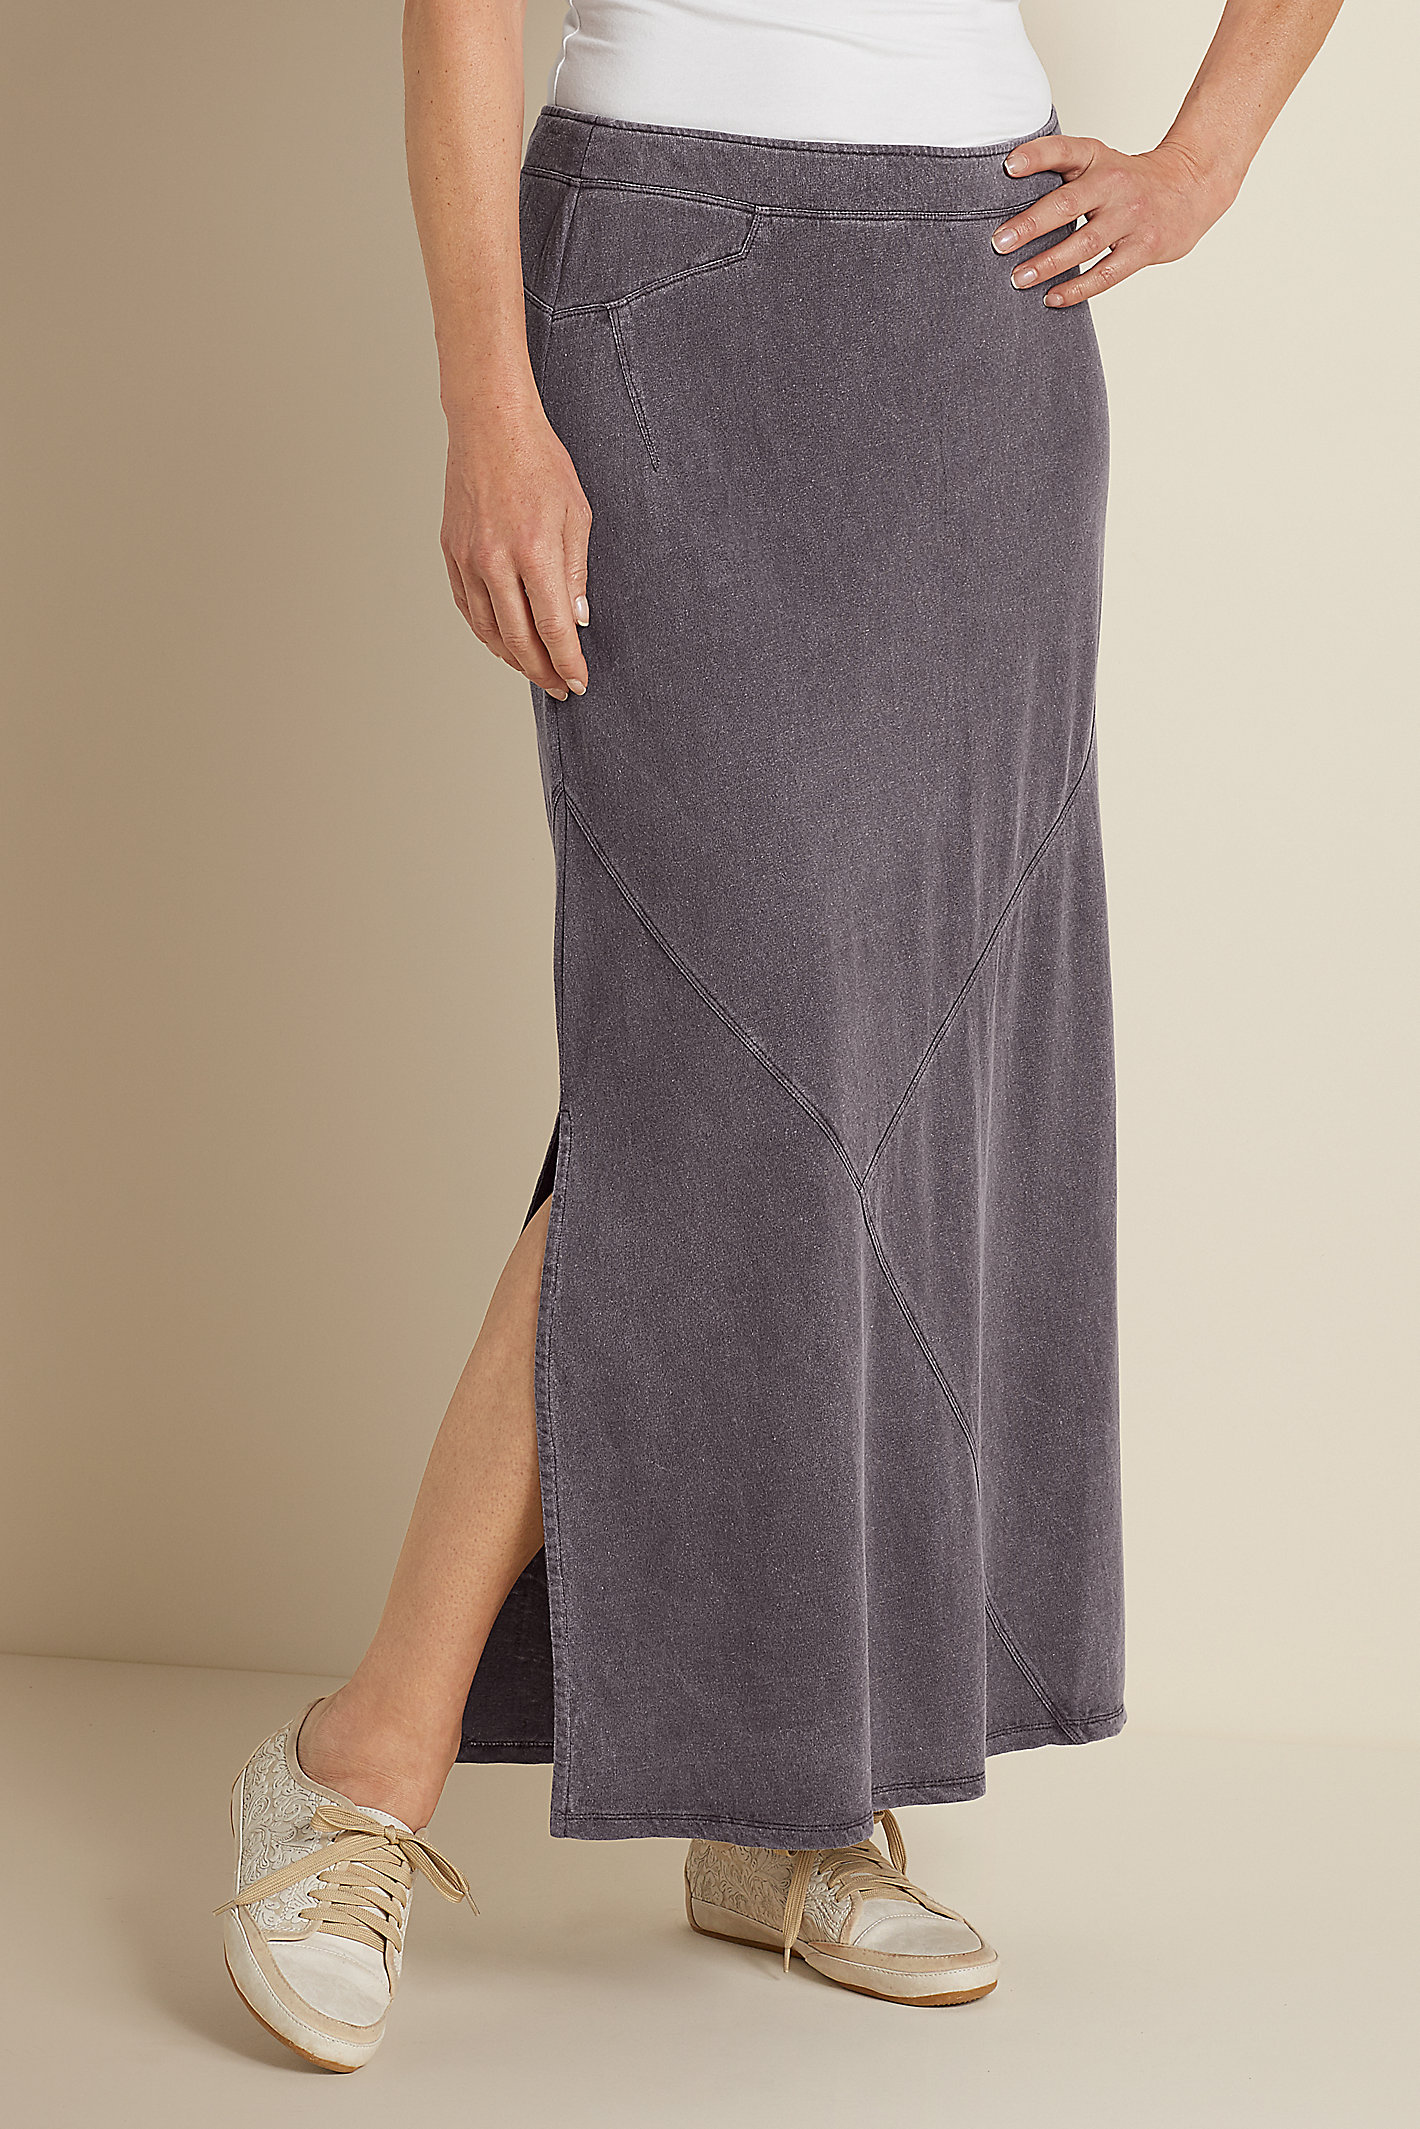 TALL KNIT LINEN MAXI SKIRT